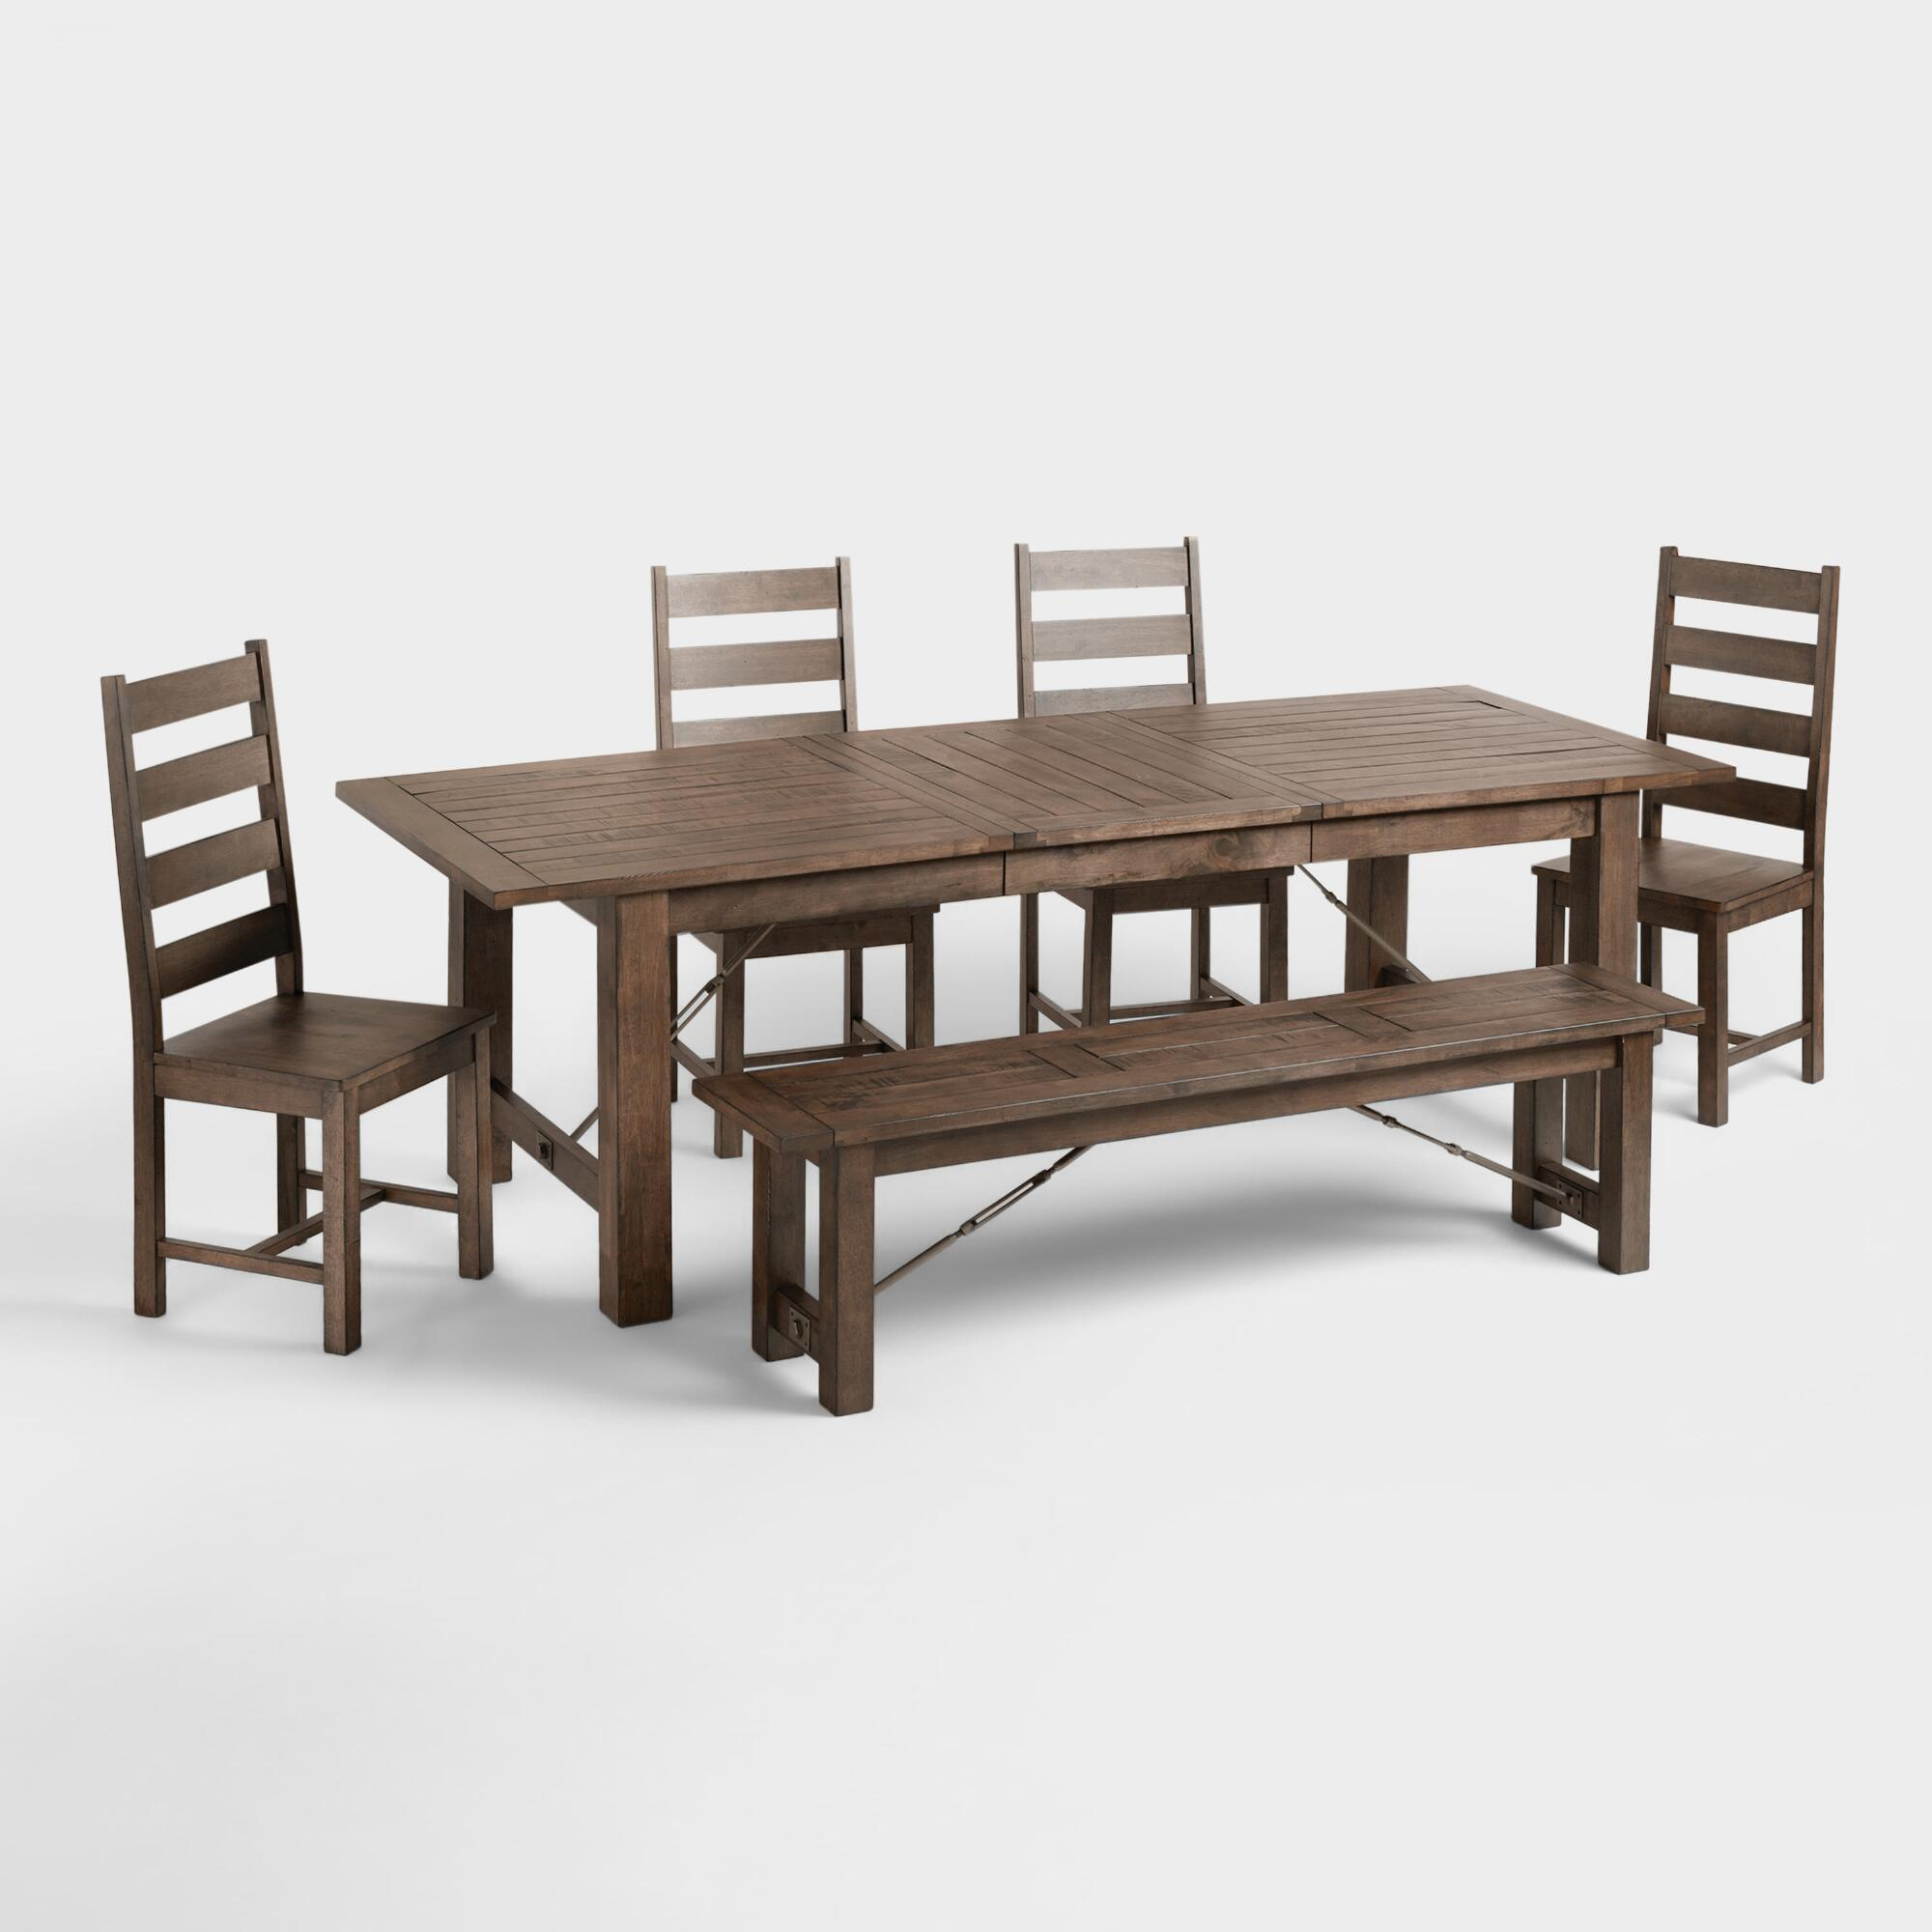 Dining Room With Bench: Garner Dining Collection